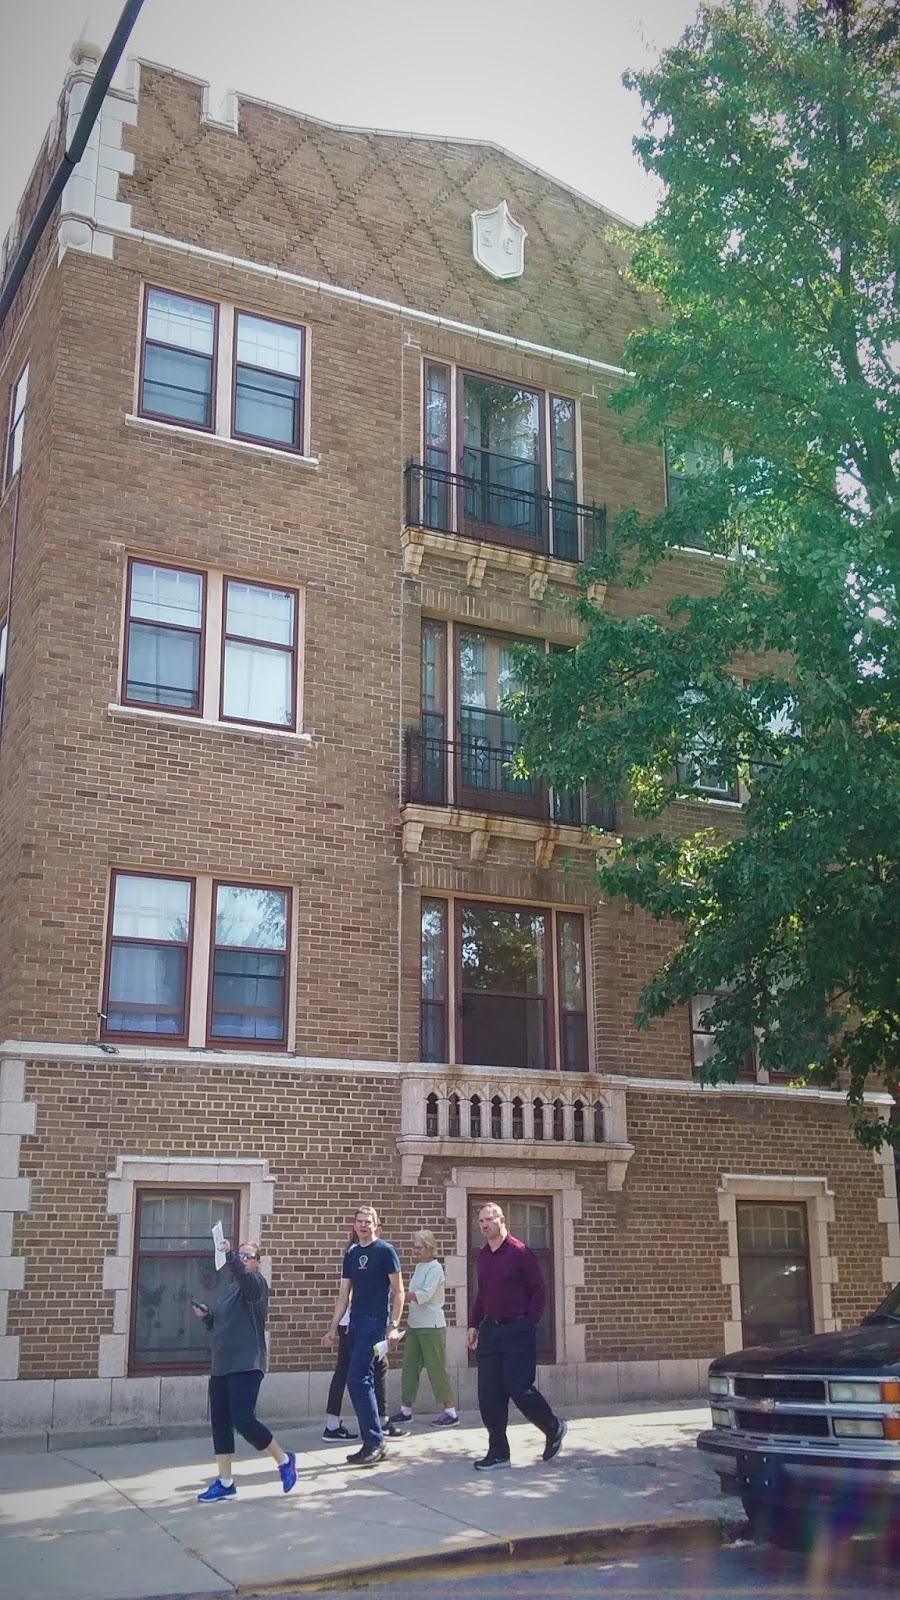 This Is Sheridan Court Apartments, Built In 1925 By The Famed Architect  Alvin M. Strauss. Someday I Will Show You The Pictures Of My Amazing Old  Apartment.